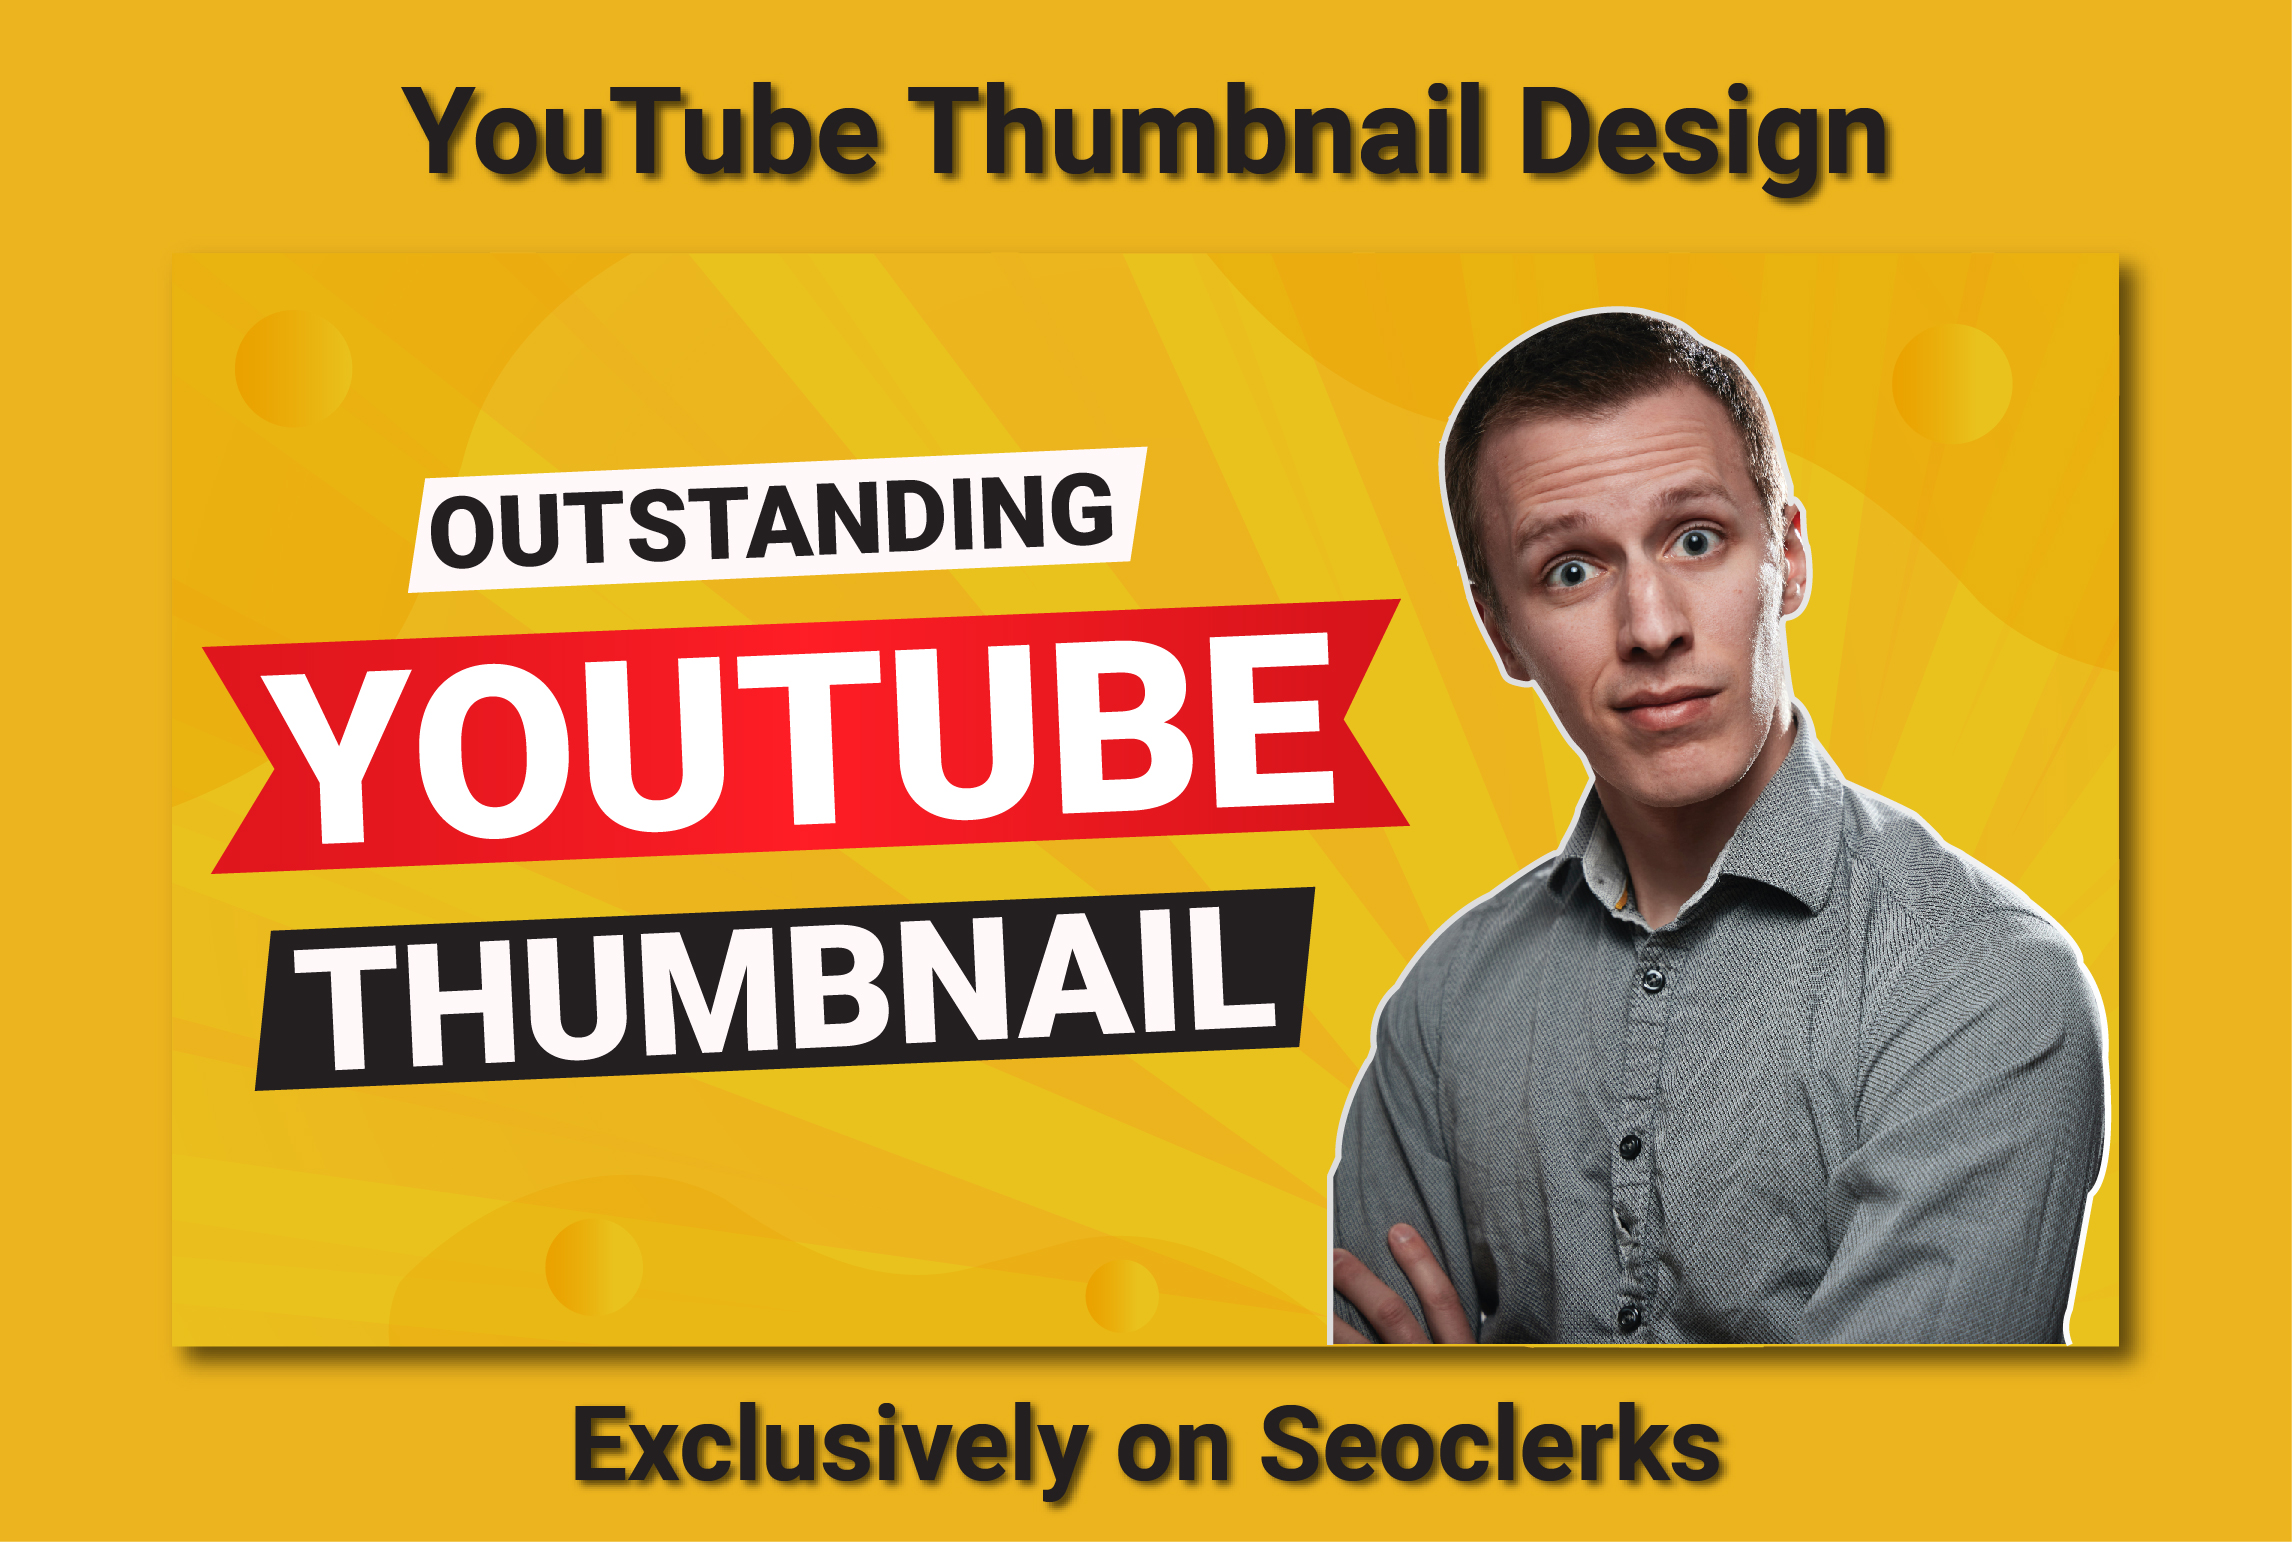 I will design amazing youtube thumbnails